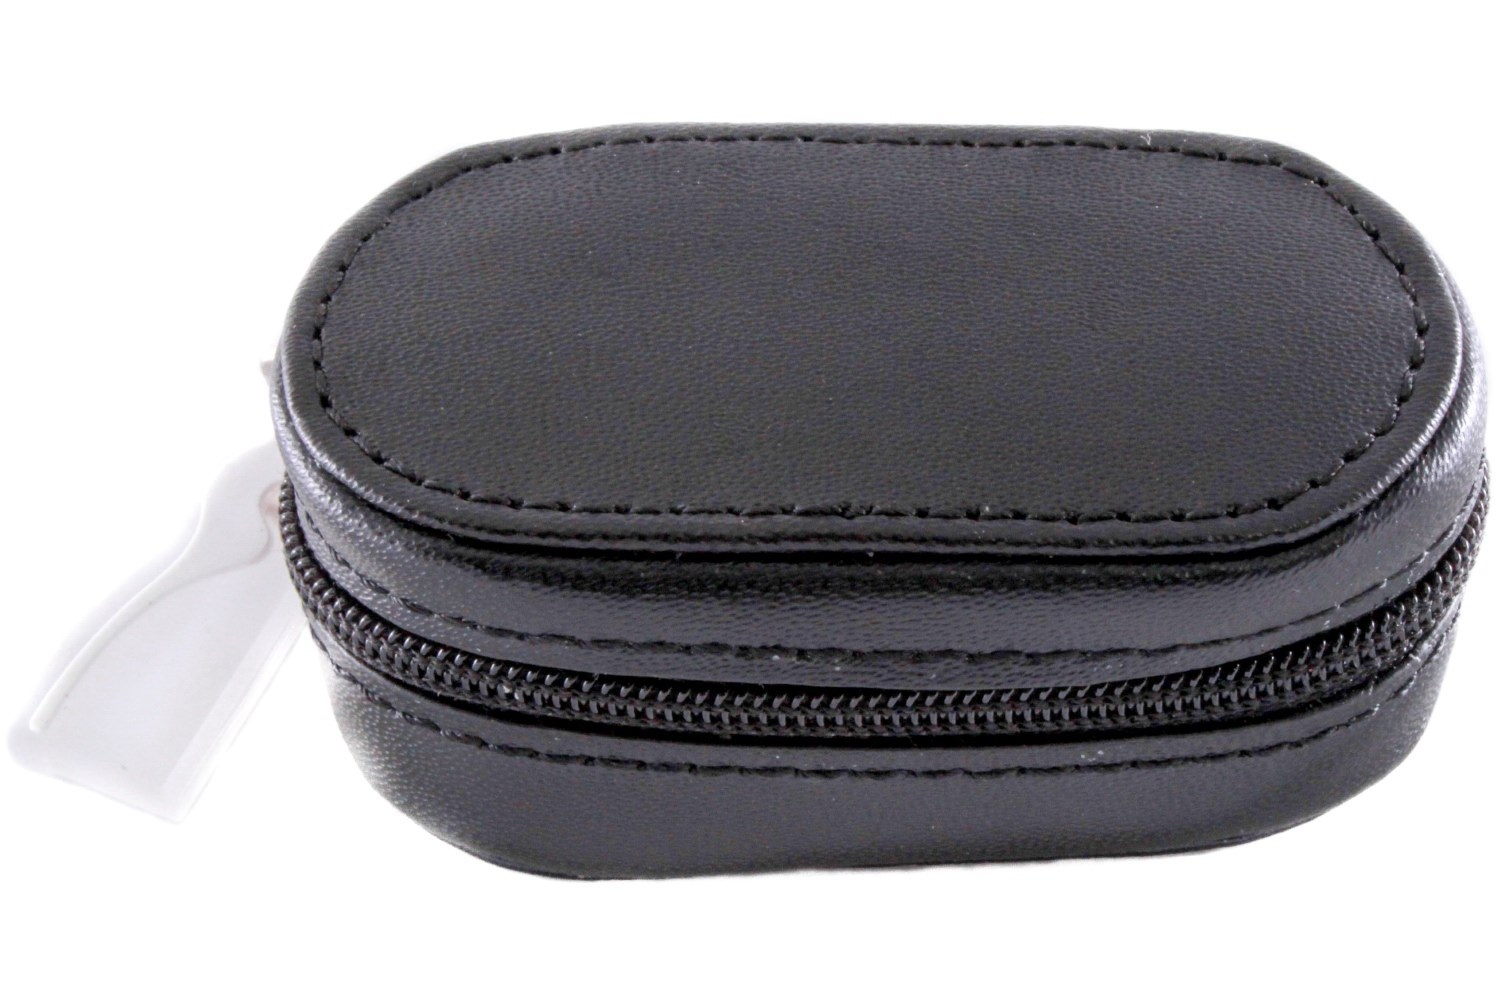 Leather Contact Lens Cases